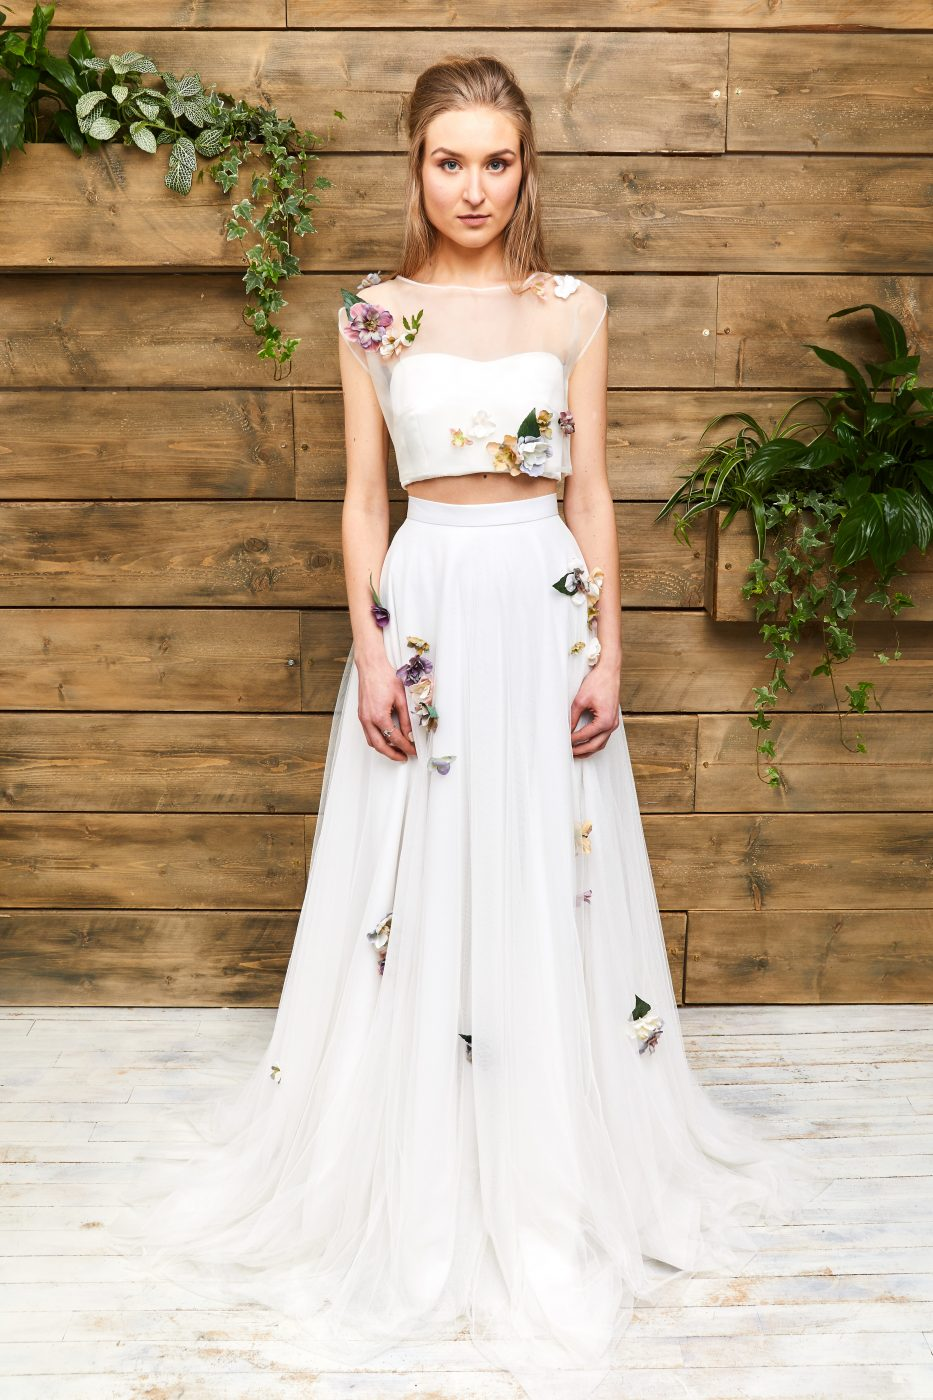 Blossom Separates by EandW Couture. Photo by Tim Bishop Photography